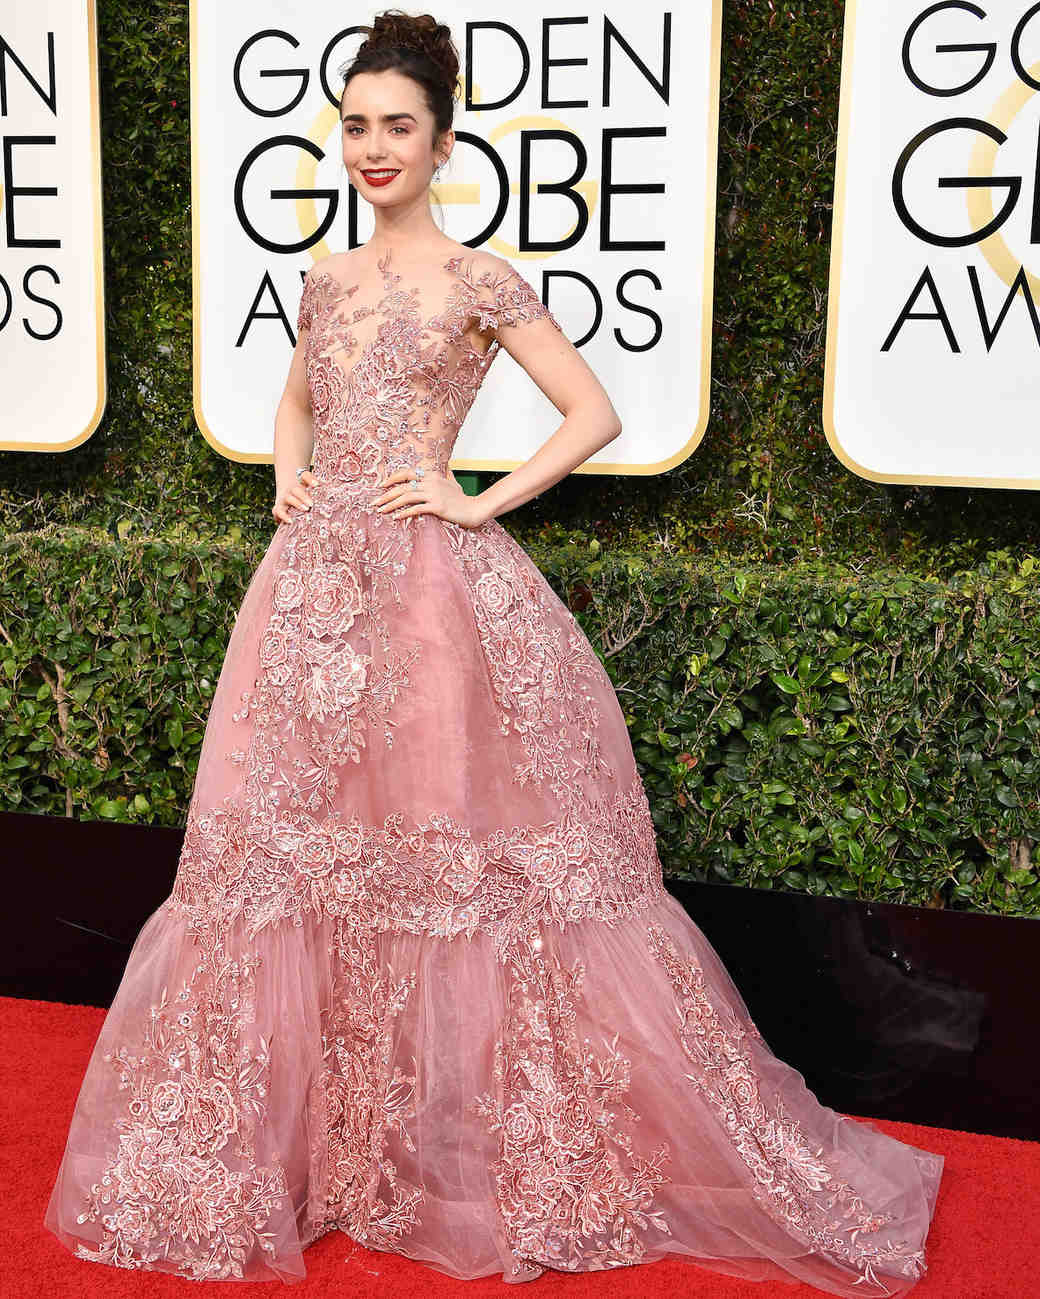 Golden globes 2017 the best red carpet dresses to inspire your bridal look martha stewart - Dresses from the red carpet ...